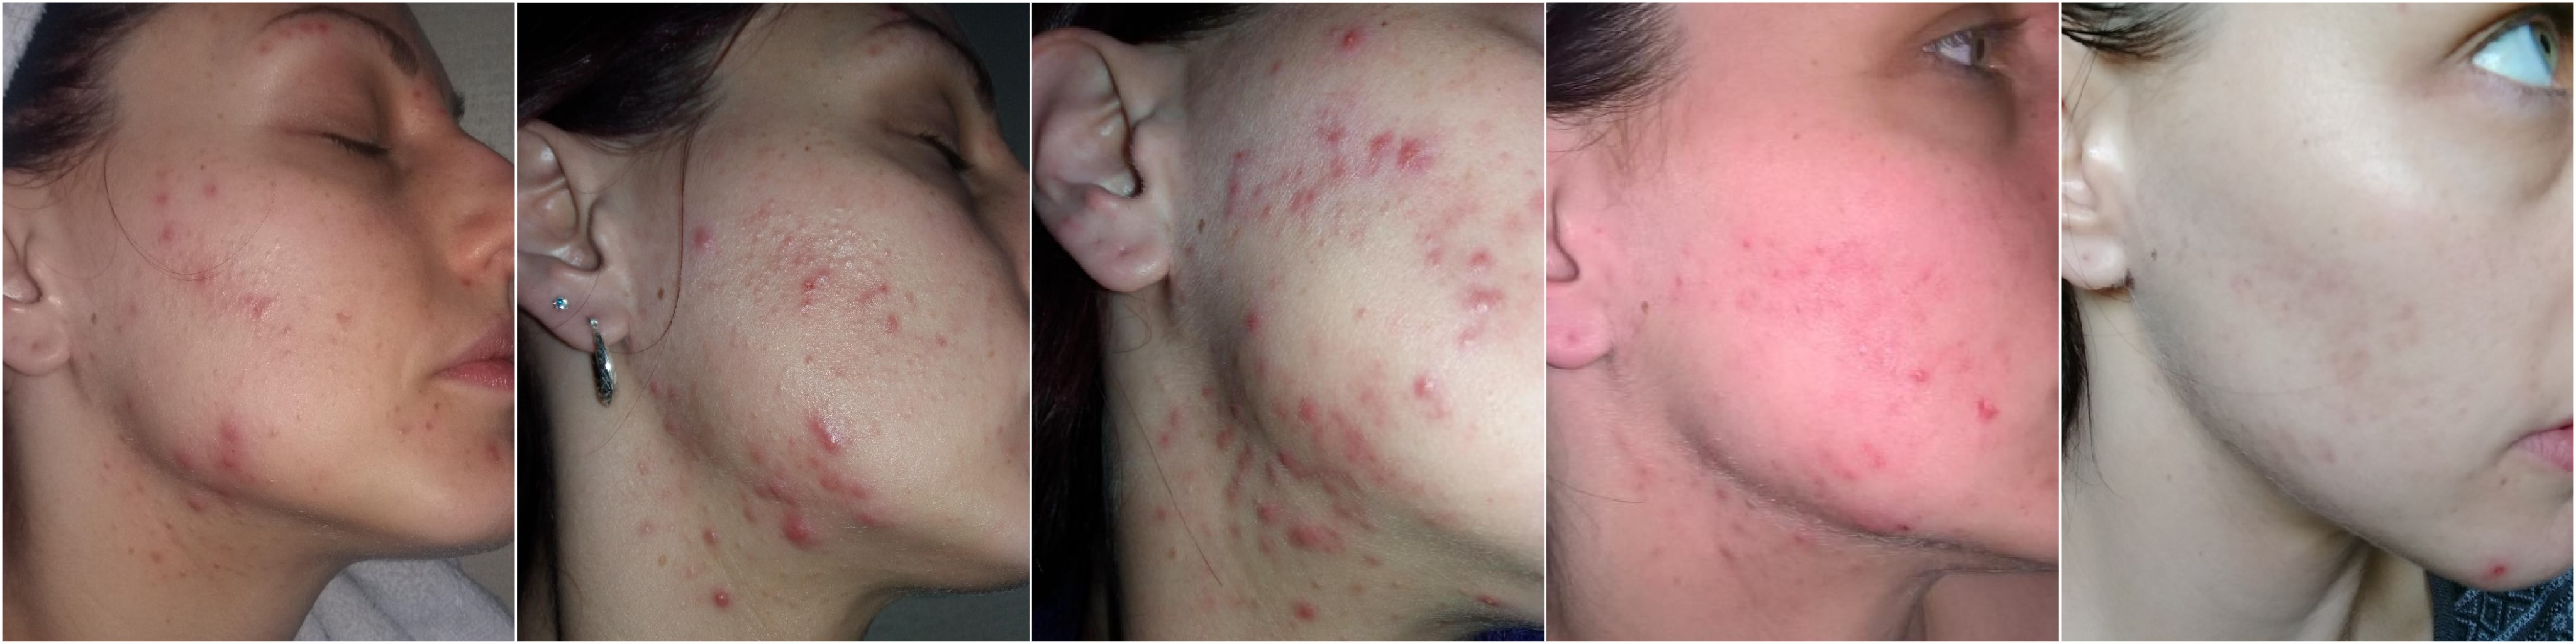 does accutane fade acne scars